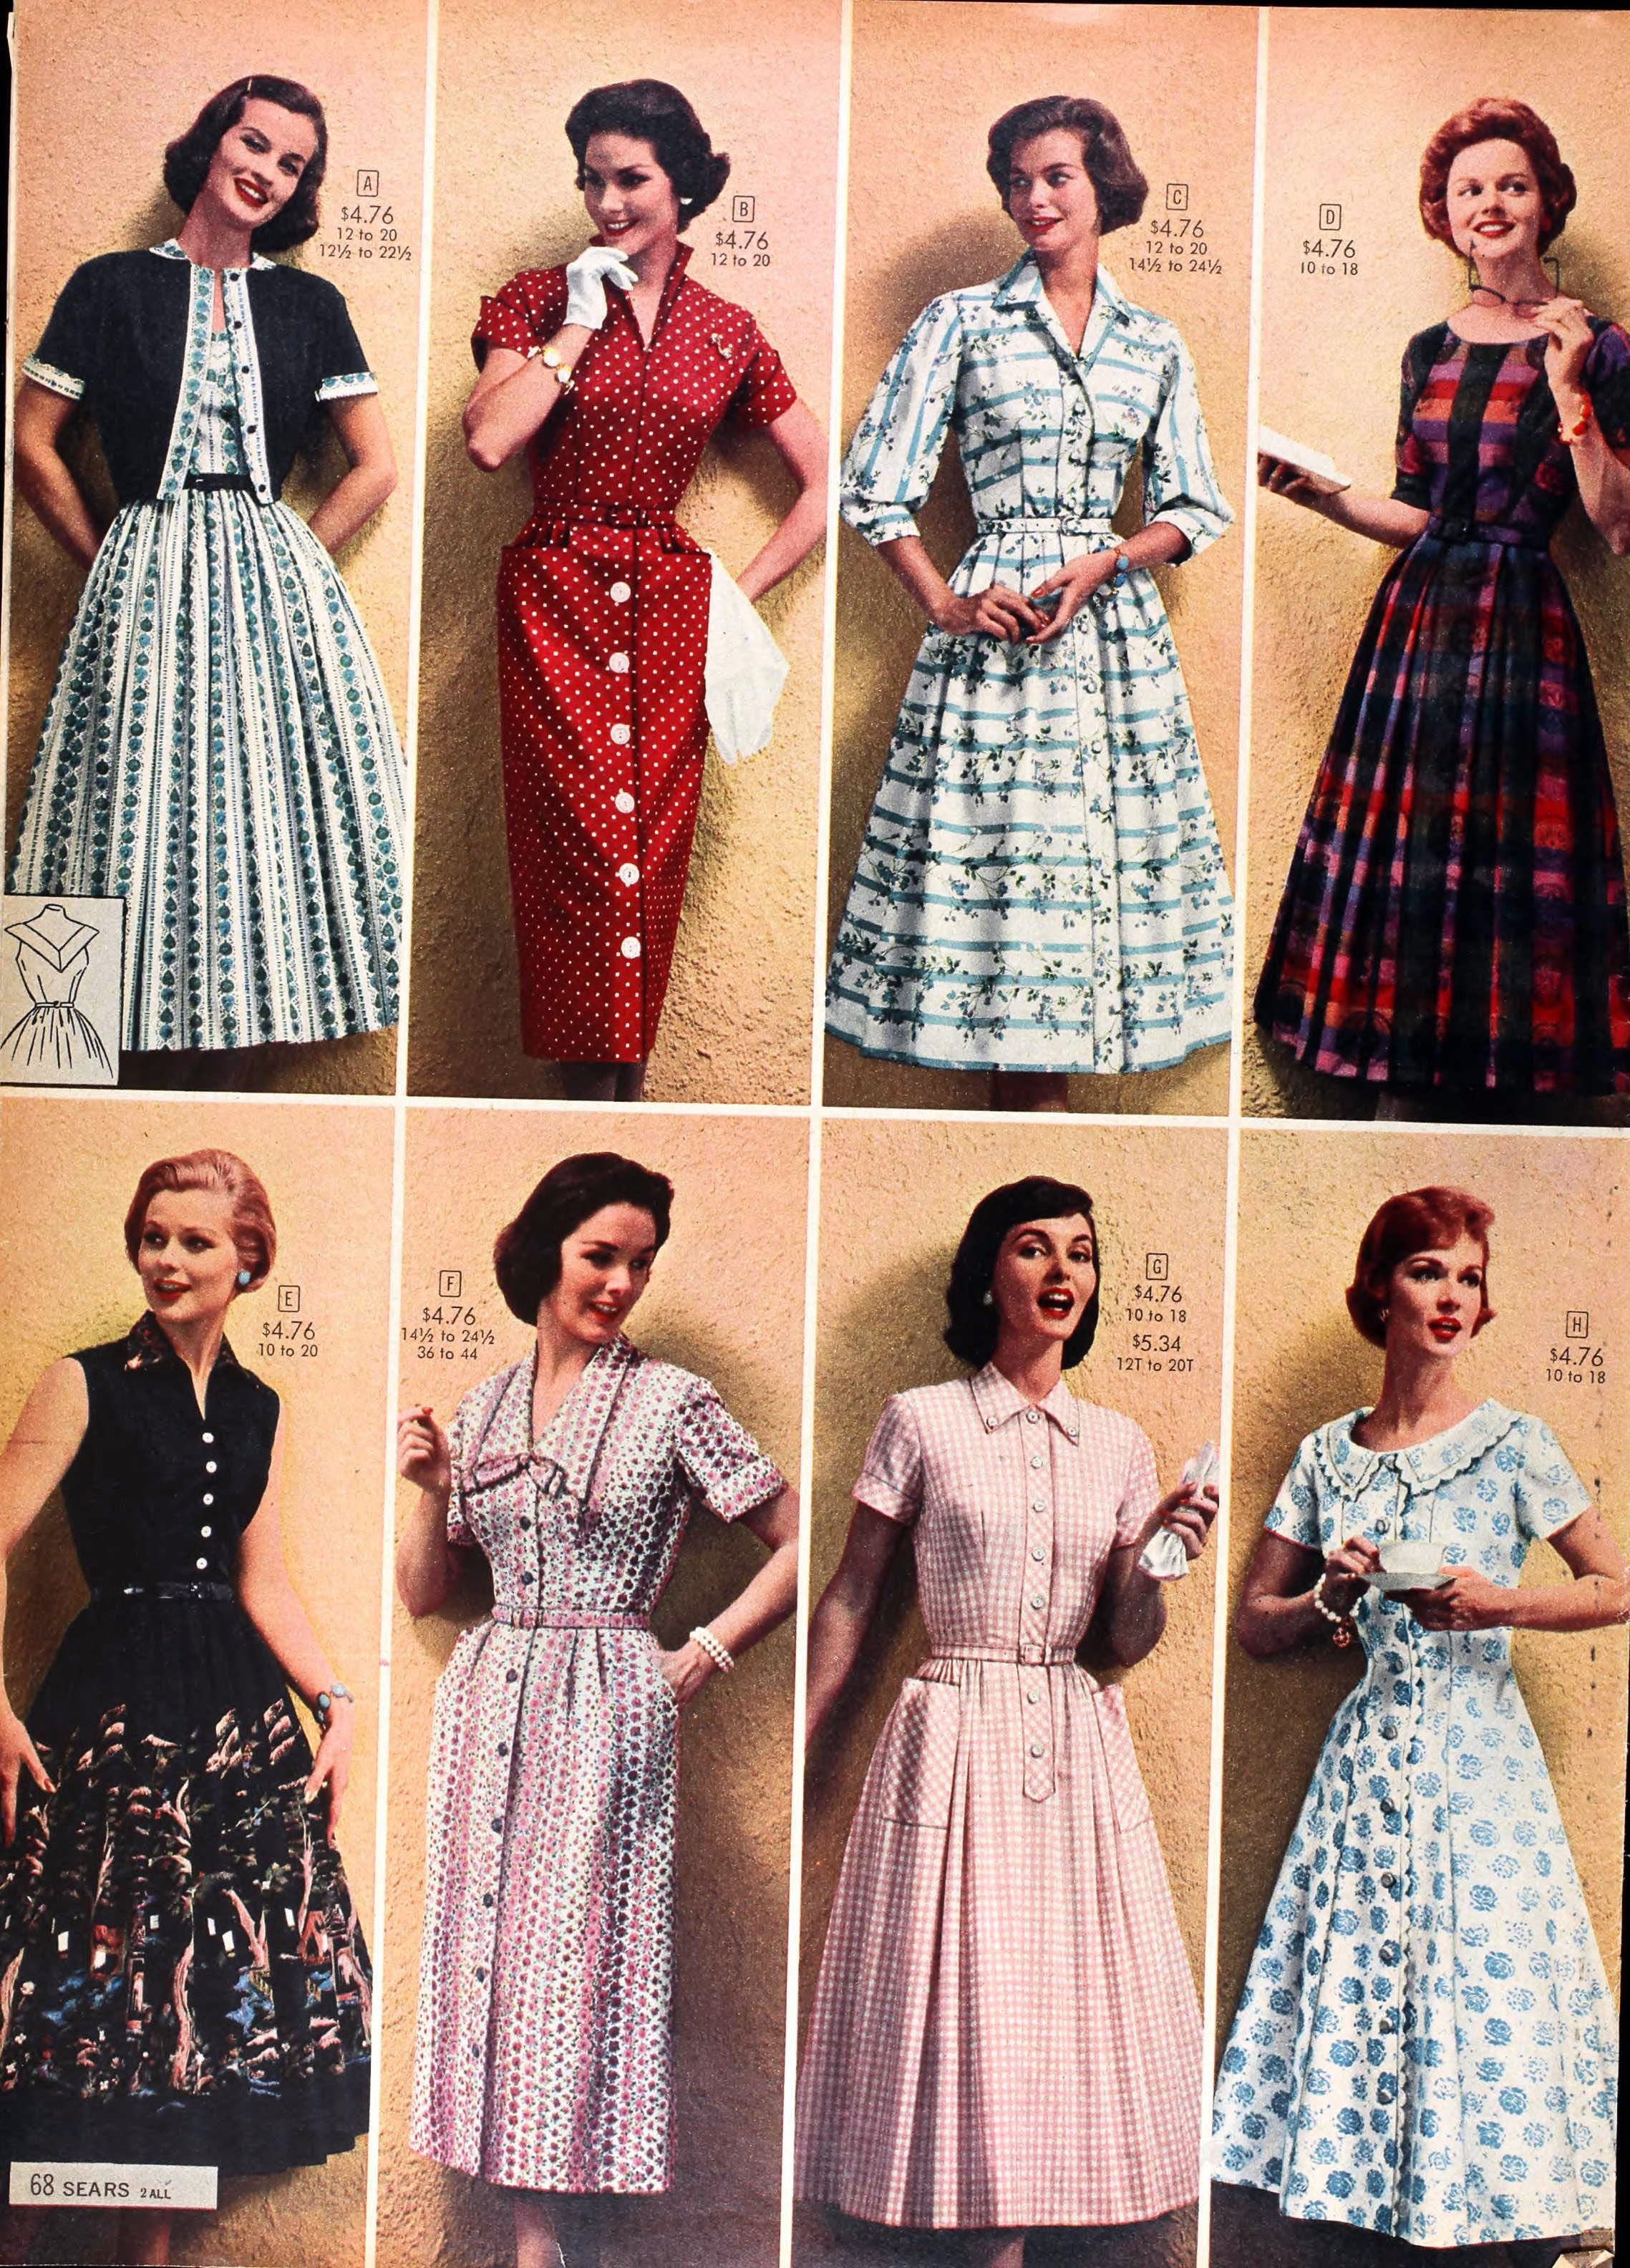 Dress fashion 1950s style clothes